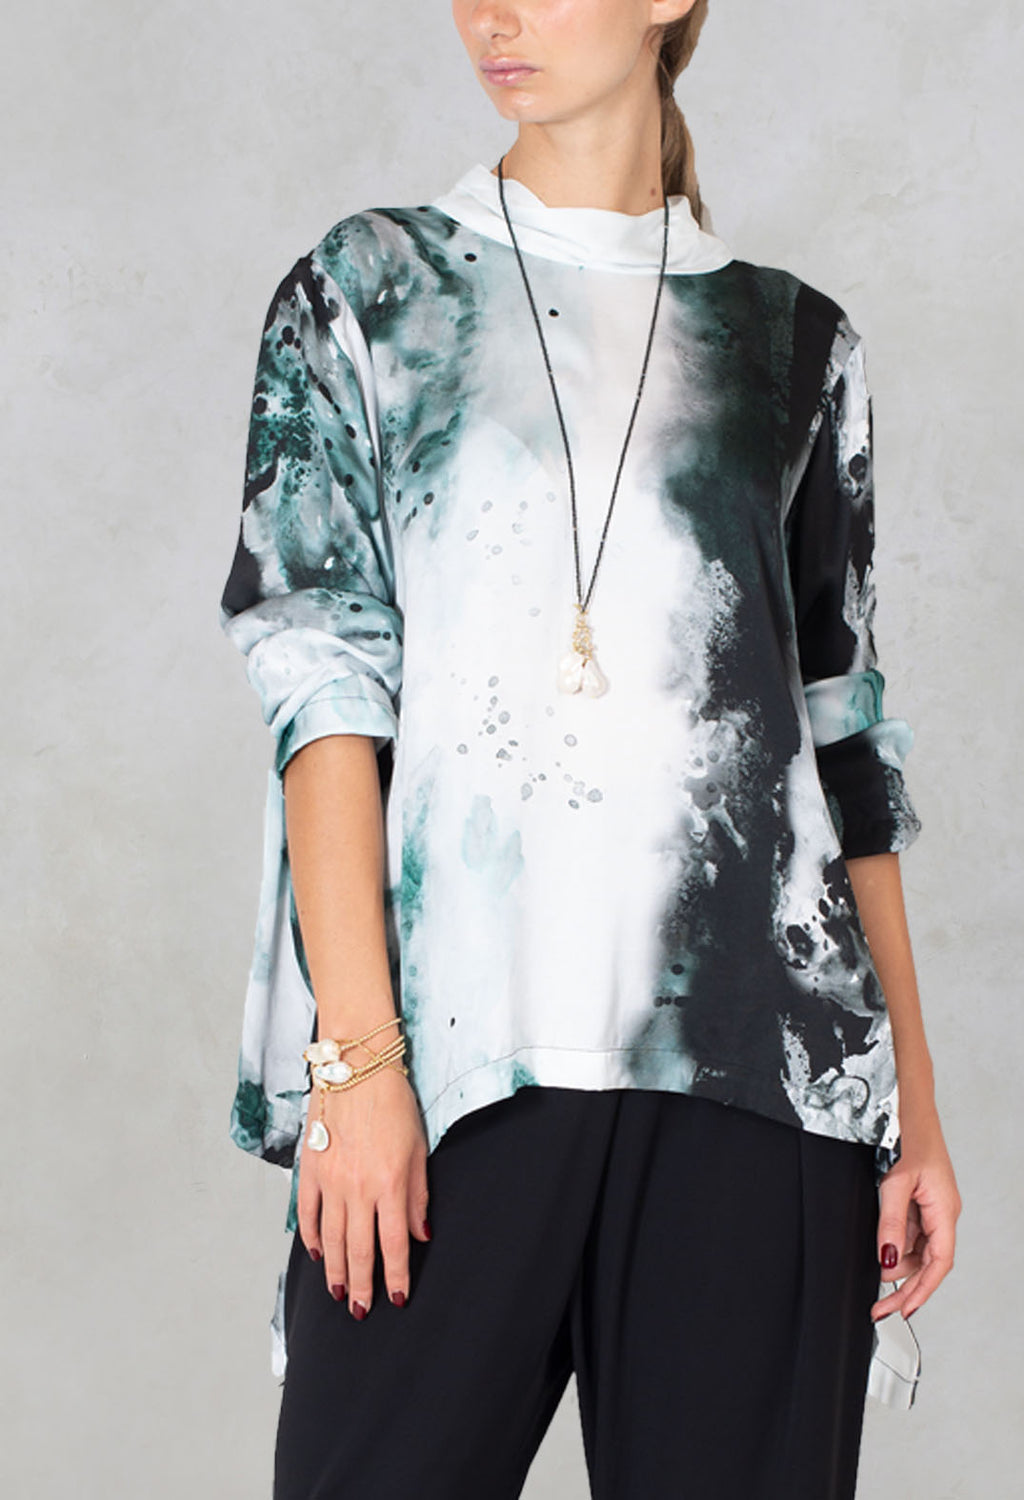 V Neck Blouse Hebe in Green Colorful